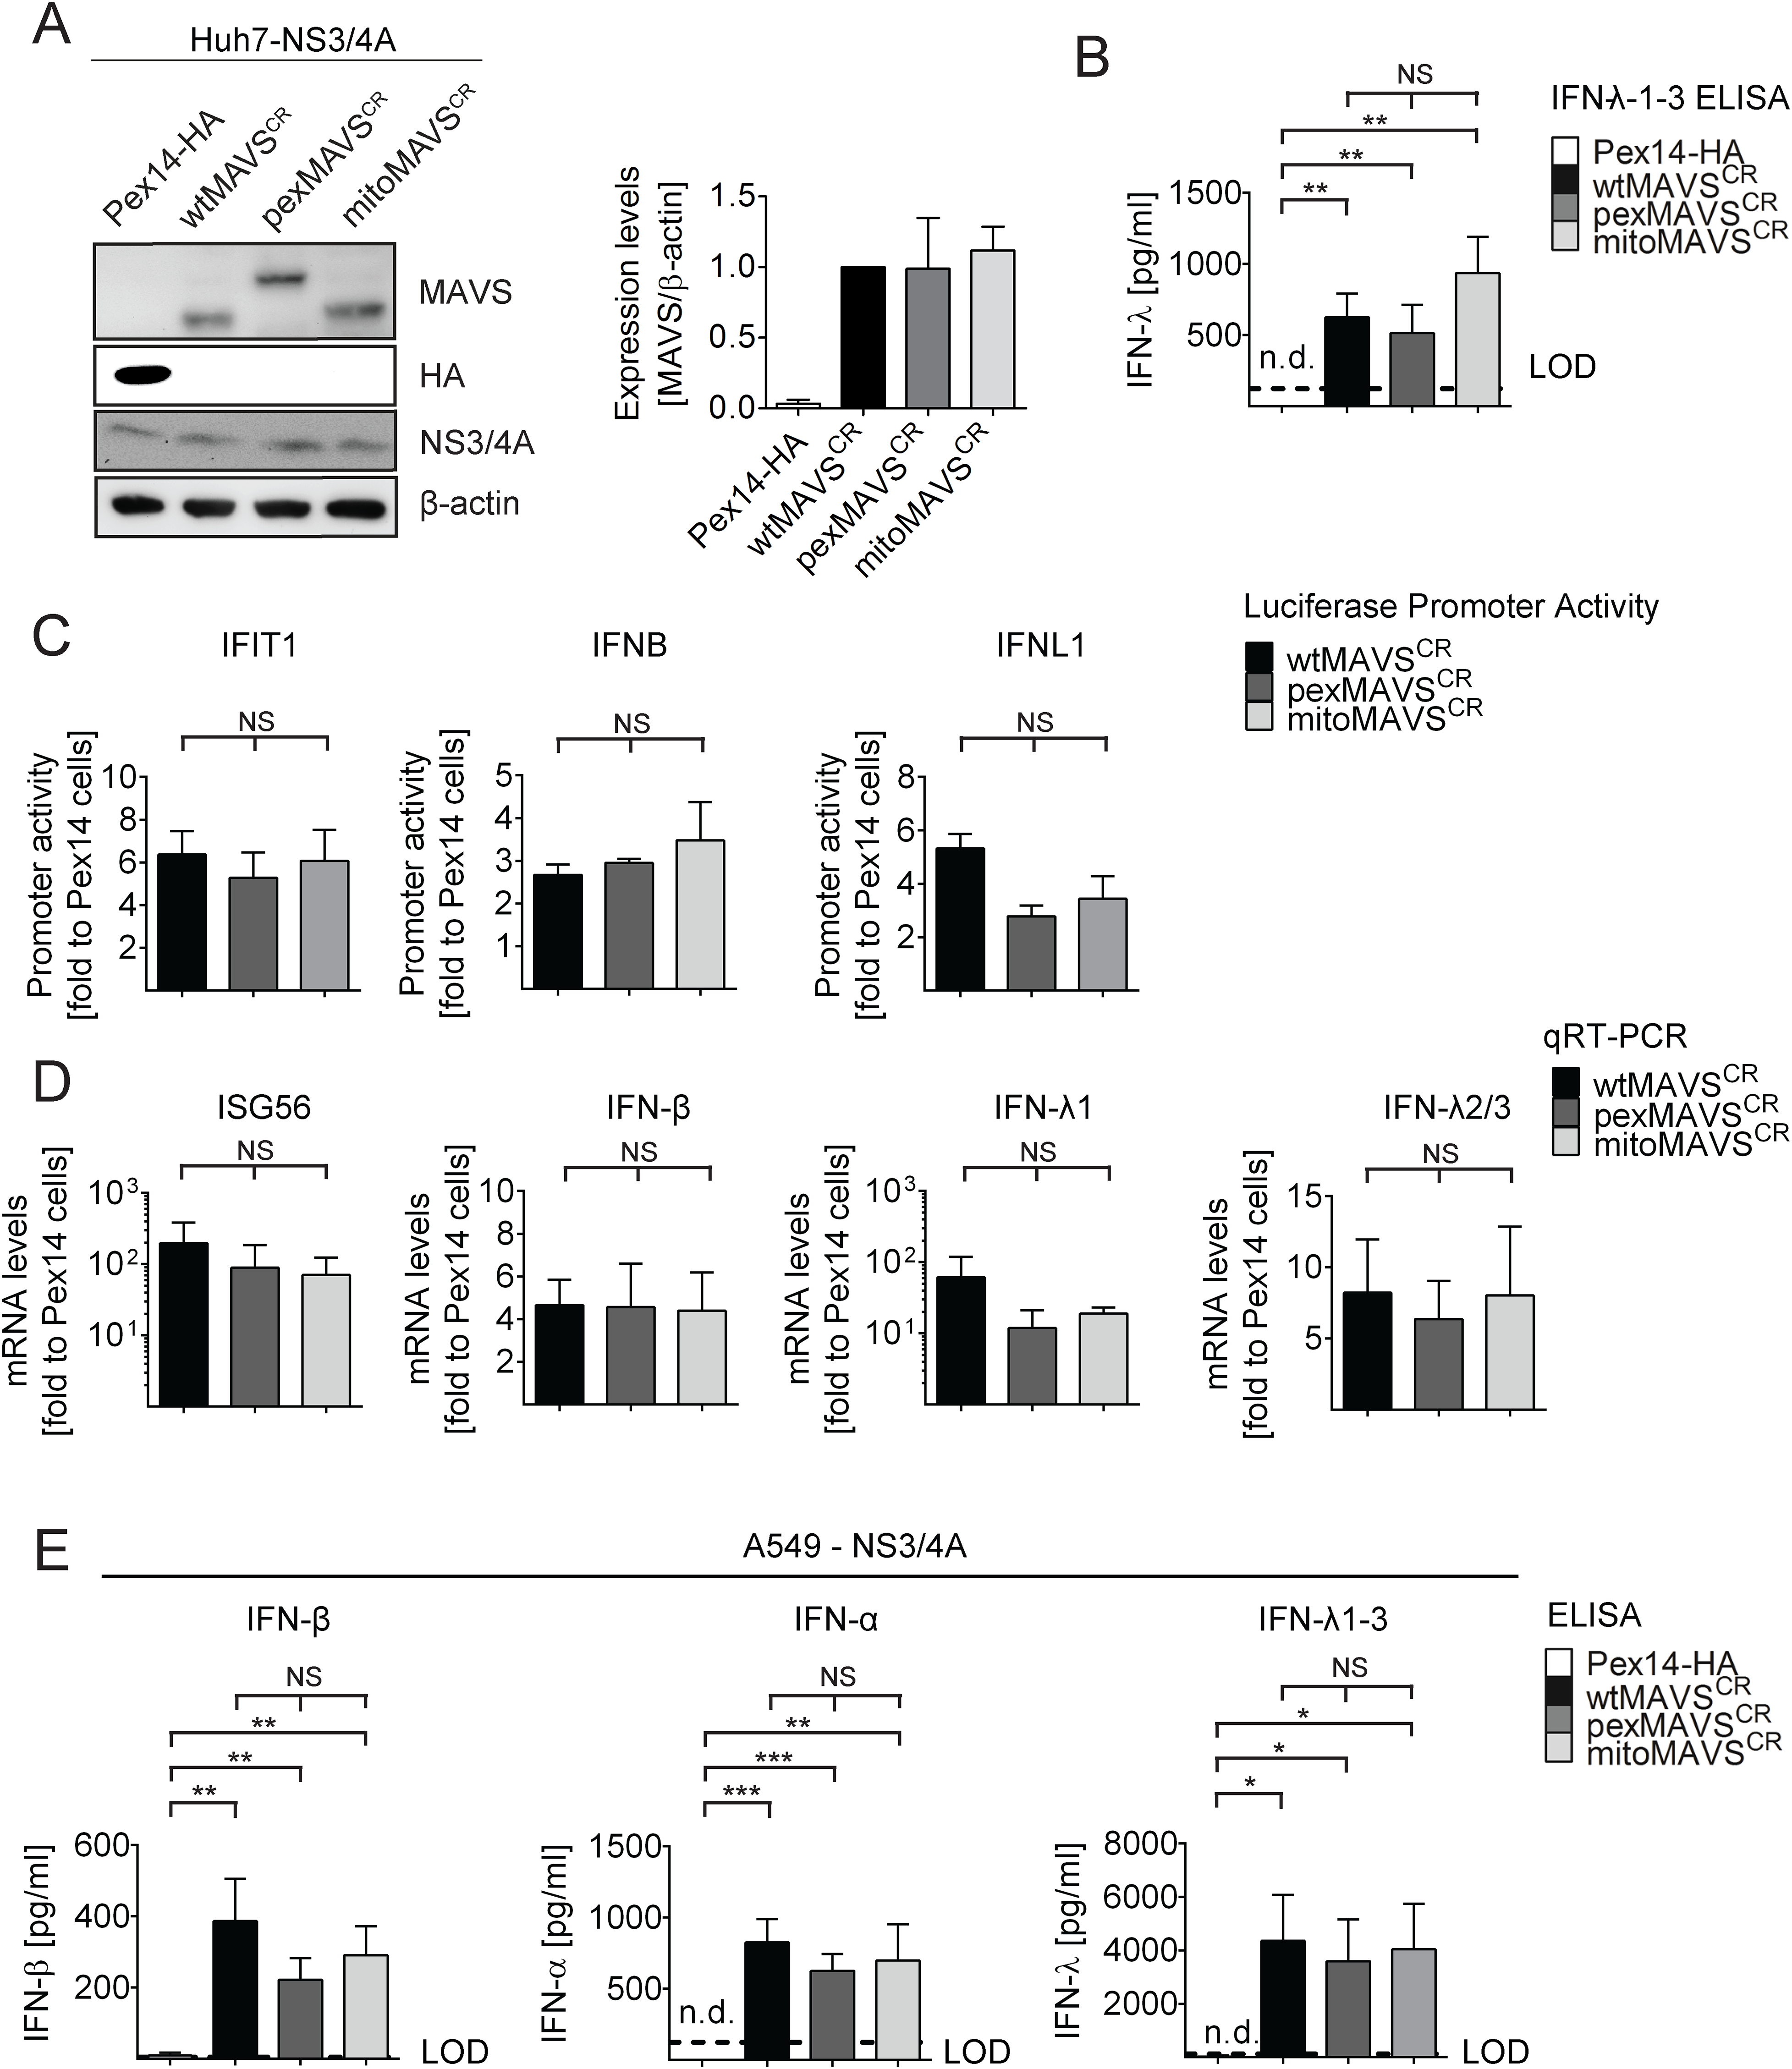 Comparable activation of the IFN system by MAVS proteins localizing to peroxisomes or mitochondria in Huh7 and A549 cells.